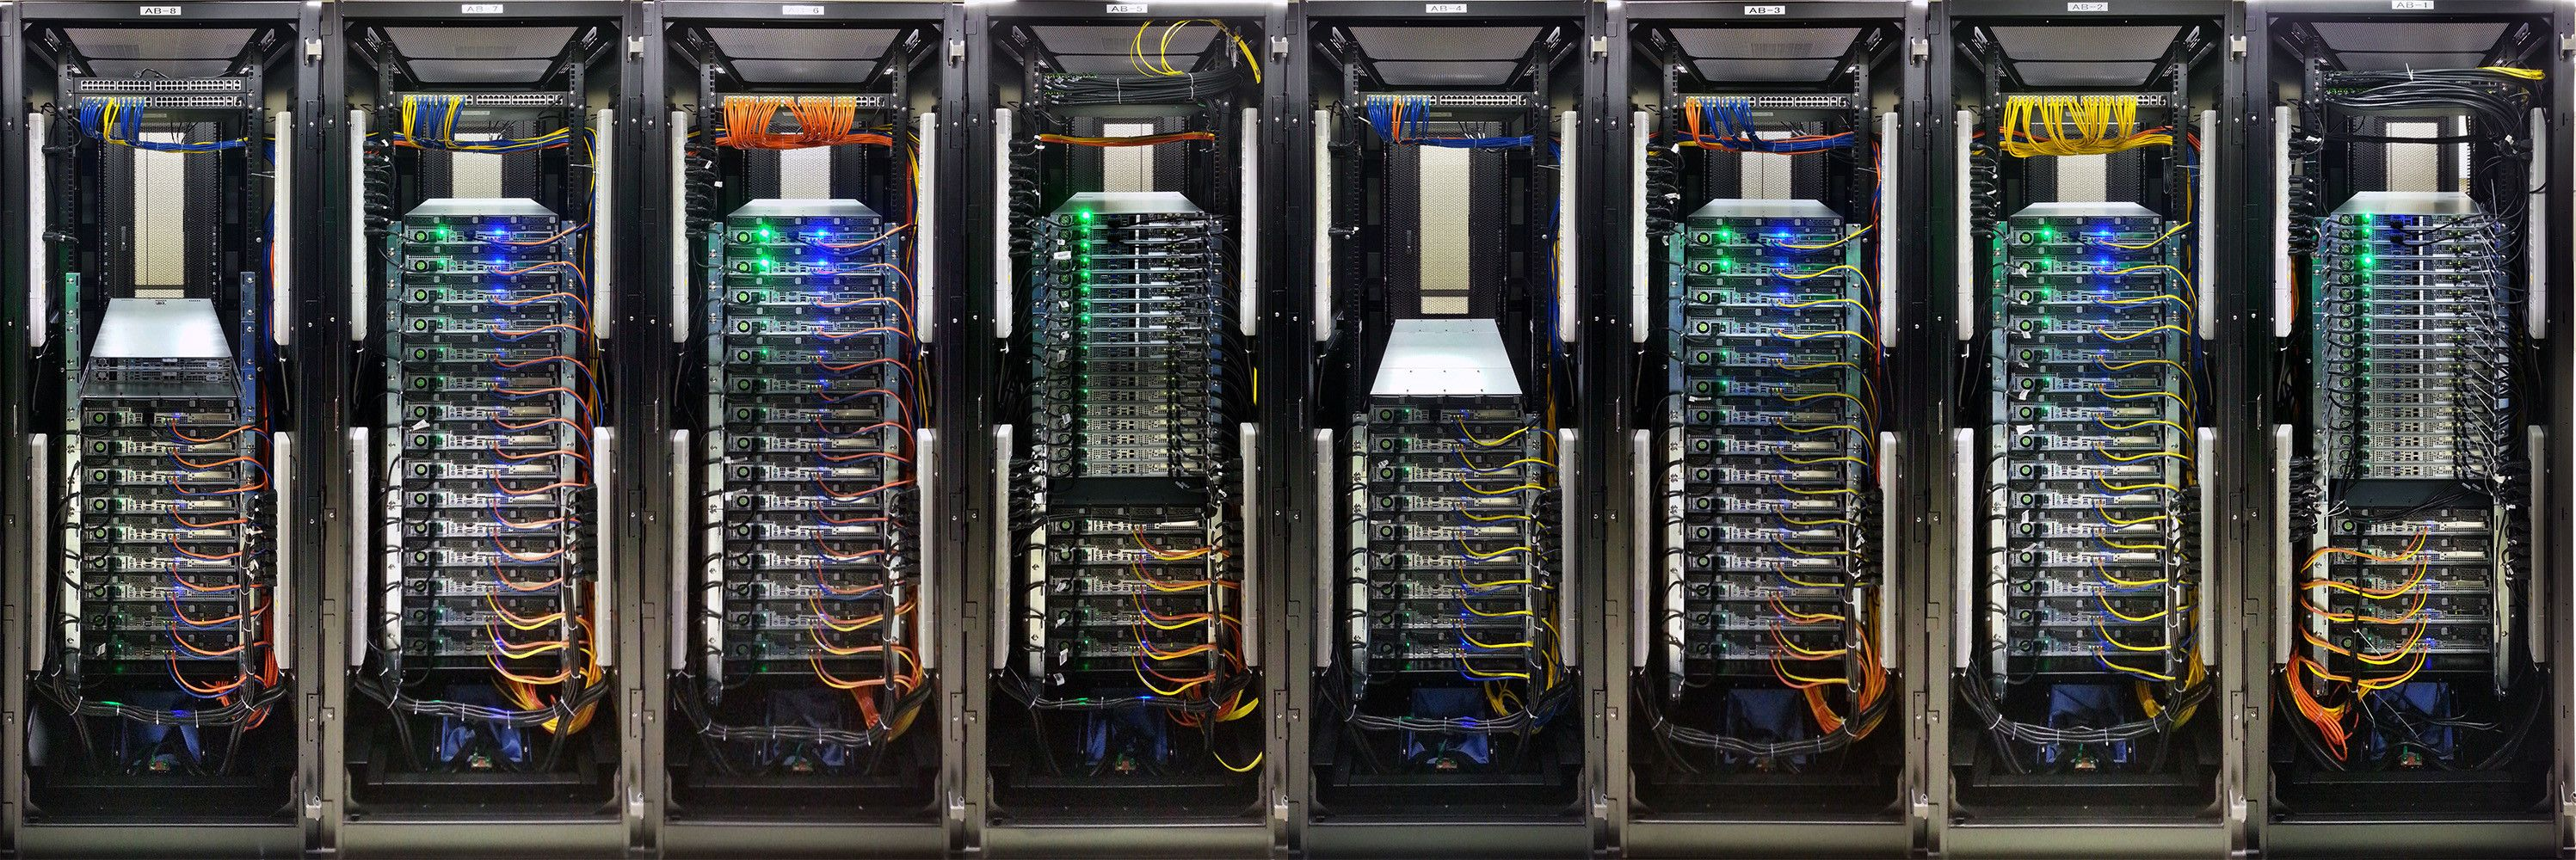 Beautiful Server Racking Very Well Done Patched In Very Neatly